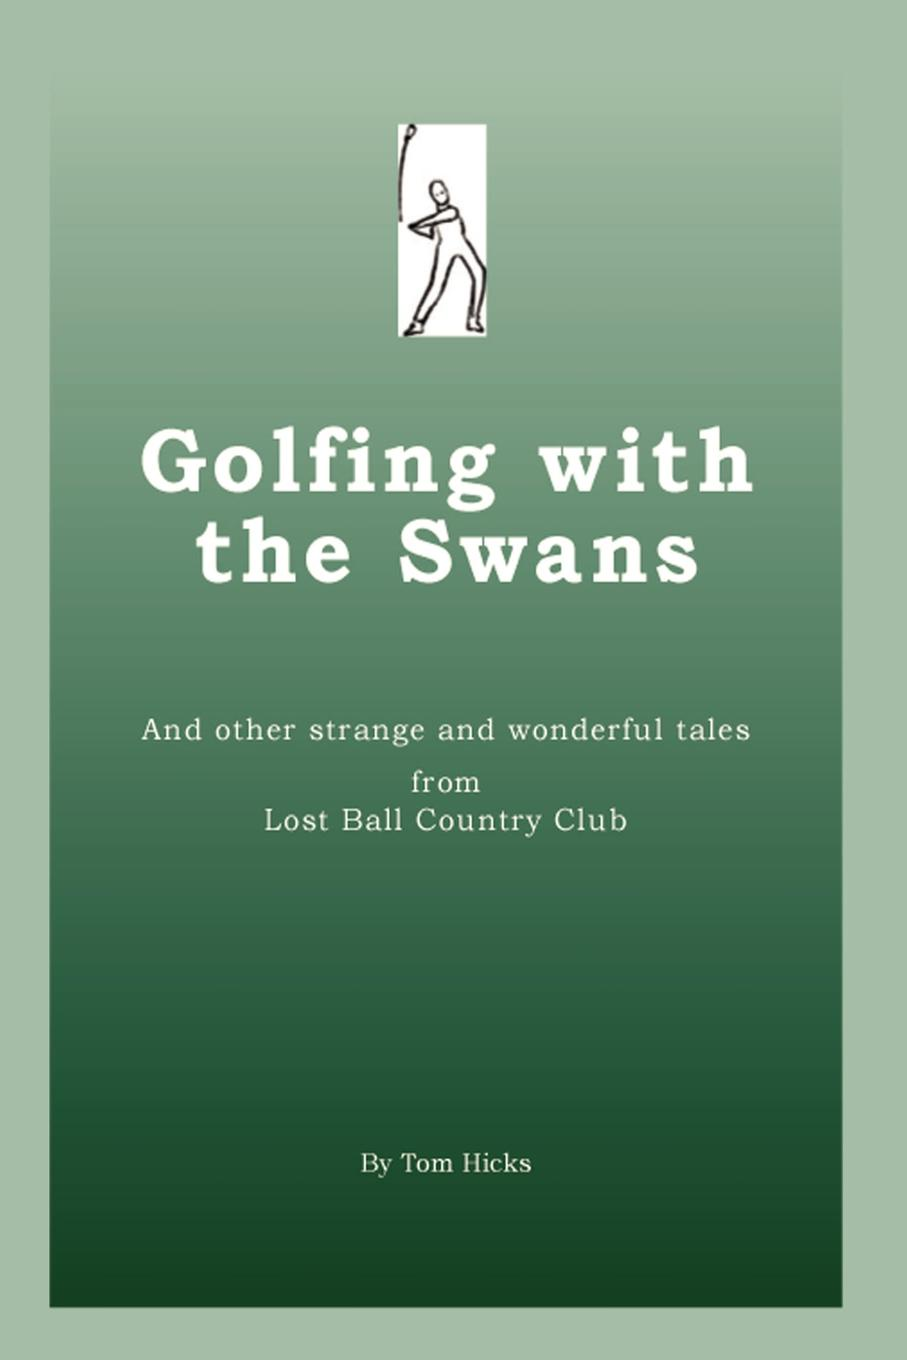 Tom Hicks Golfing with the Swans. and other strange and wonderful tales from Lost Ball Country Club llamas in pyjamas and other tales with cd